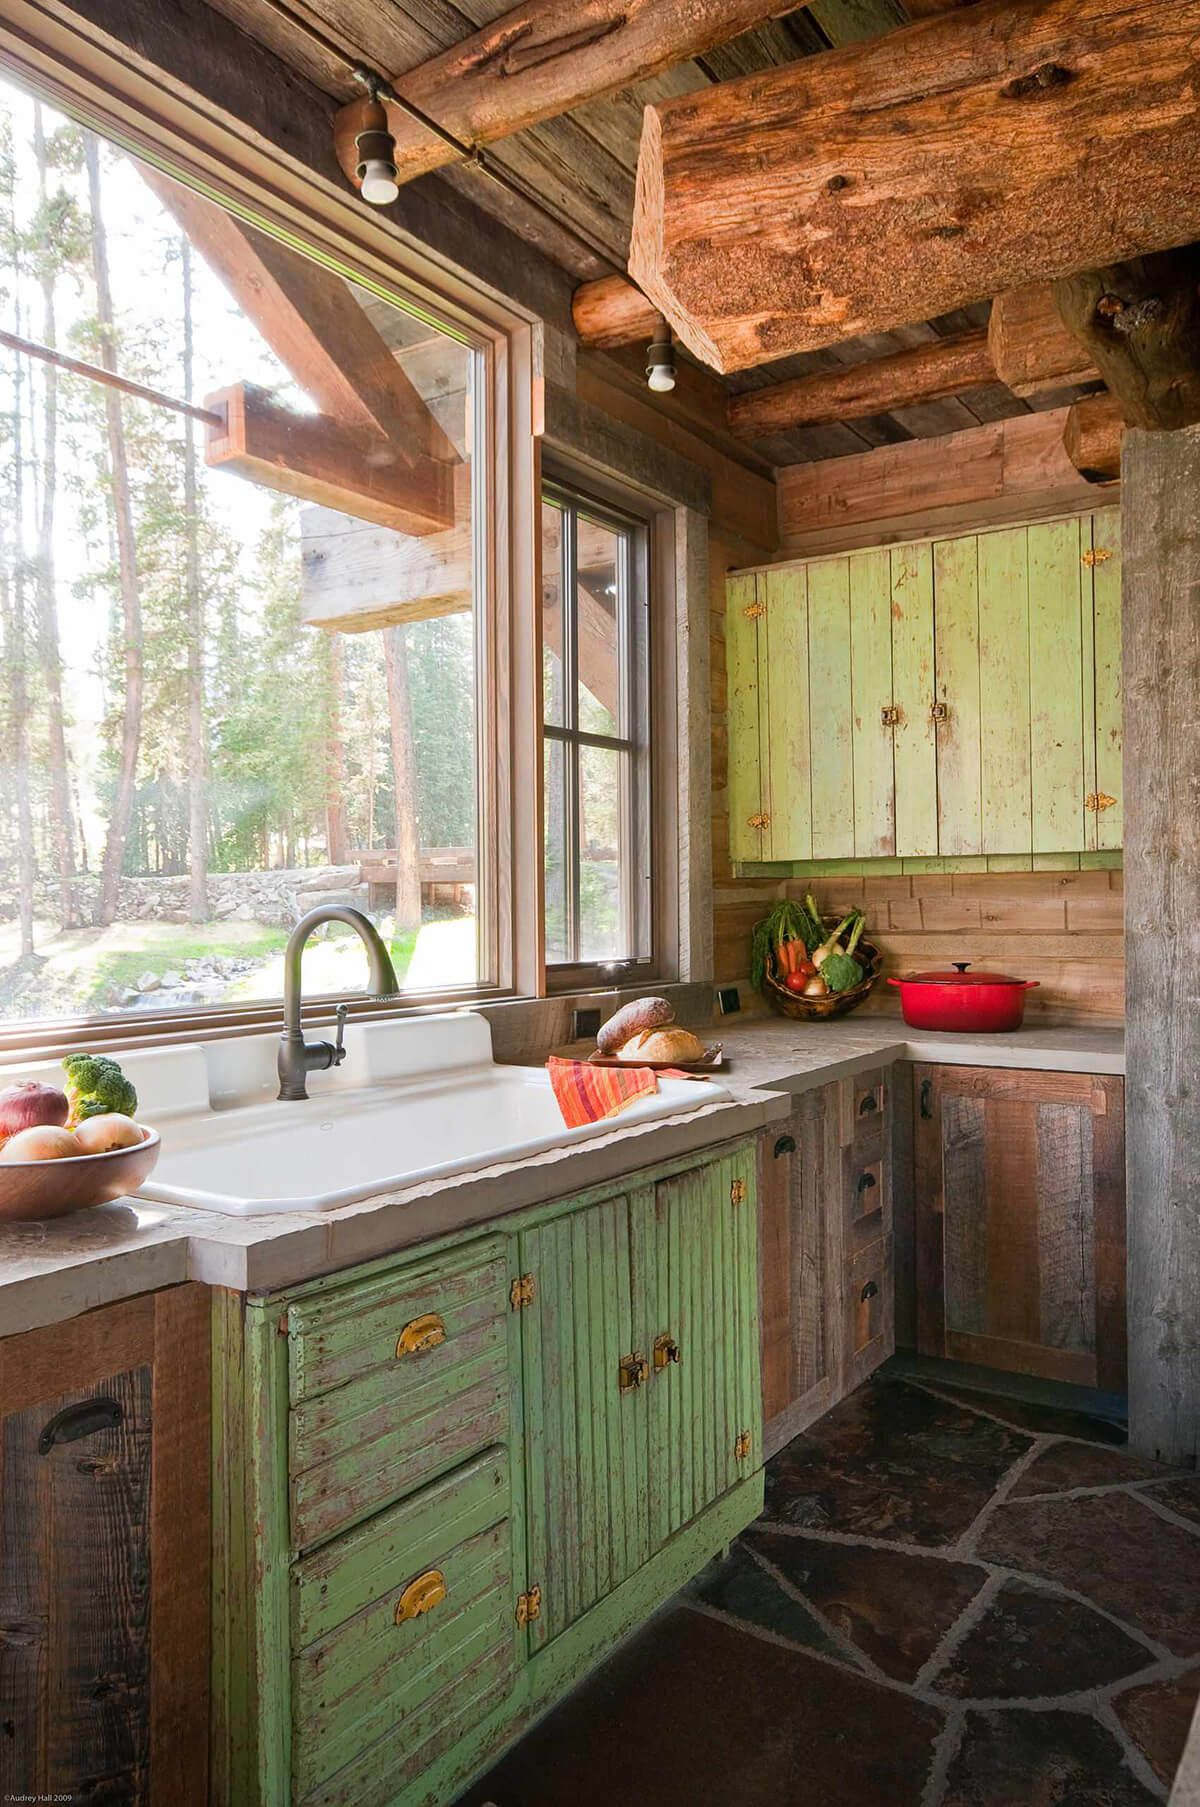 35 Farmhouse Kitchen Cabinet Ideas to Create a Warm and Welcoming ...